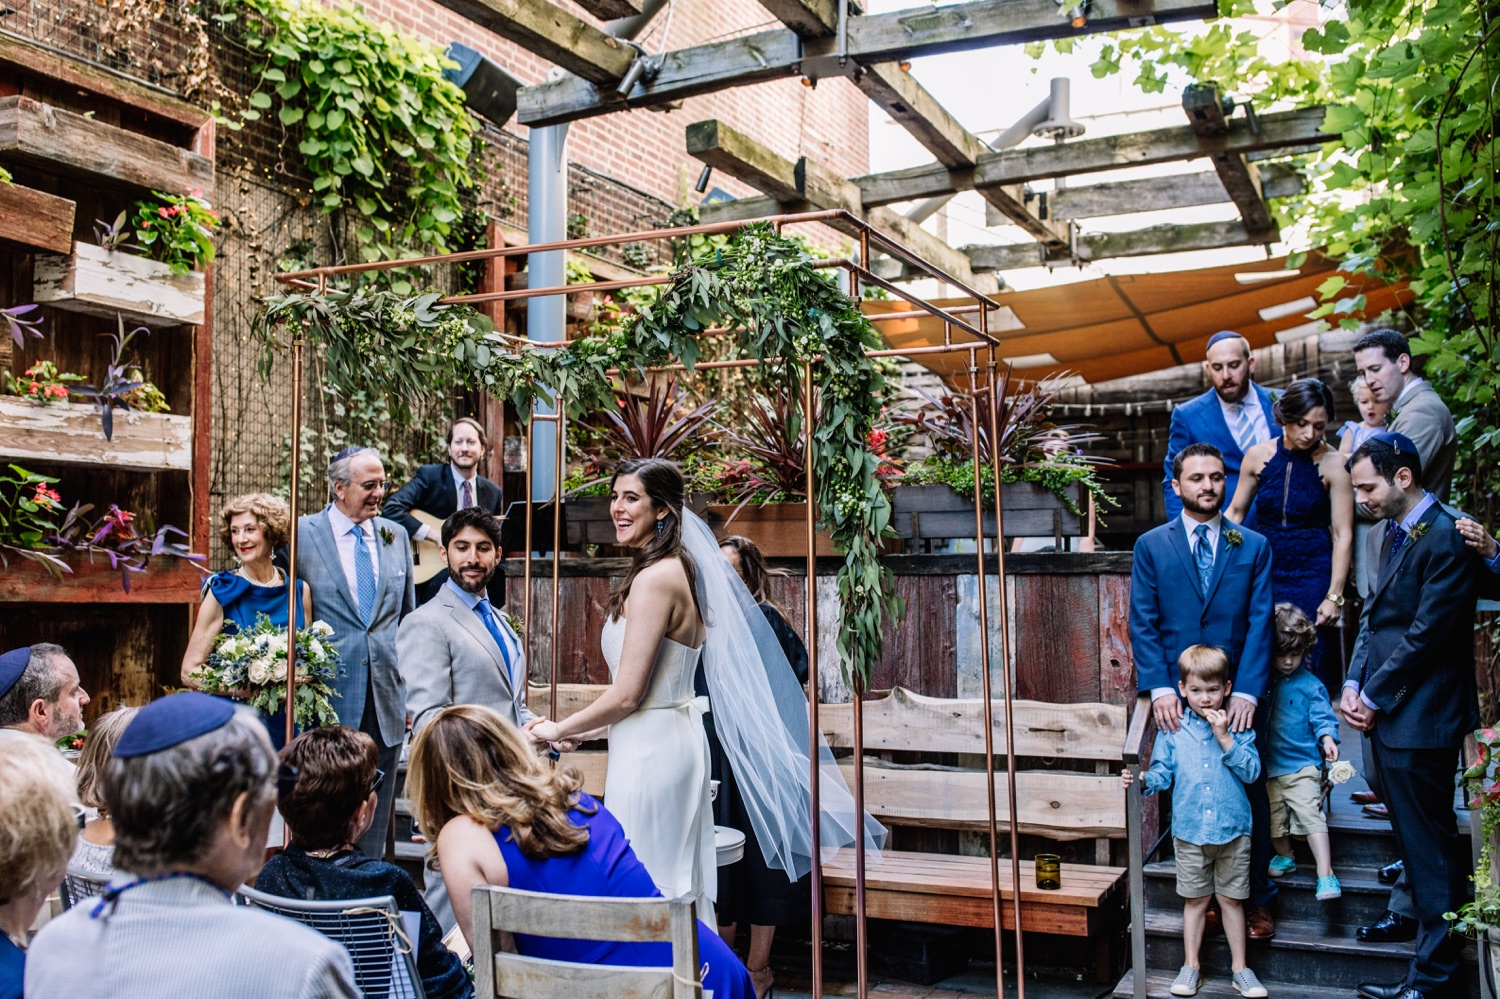 Talula's Garden Wedding in Philadelphia - Best Intimate Restaurant Venues